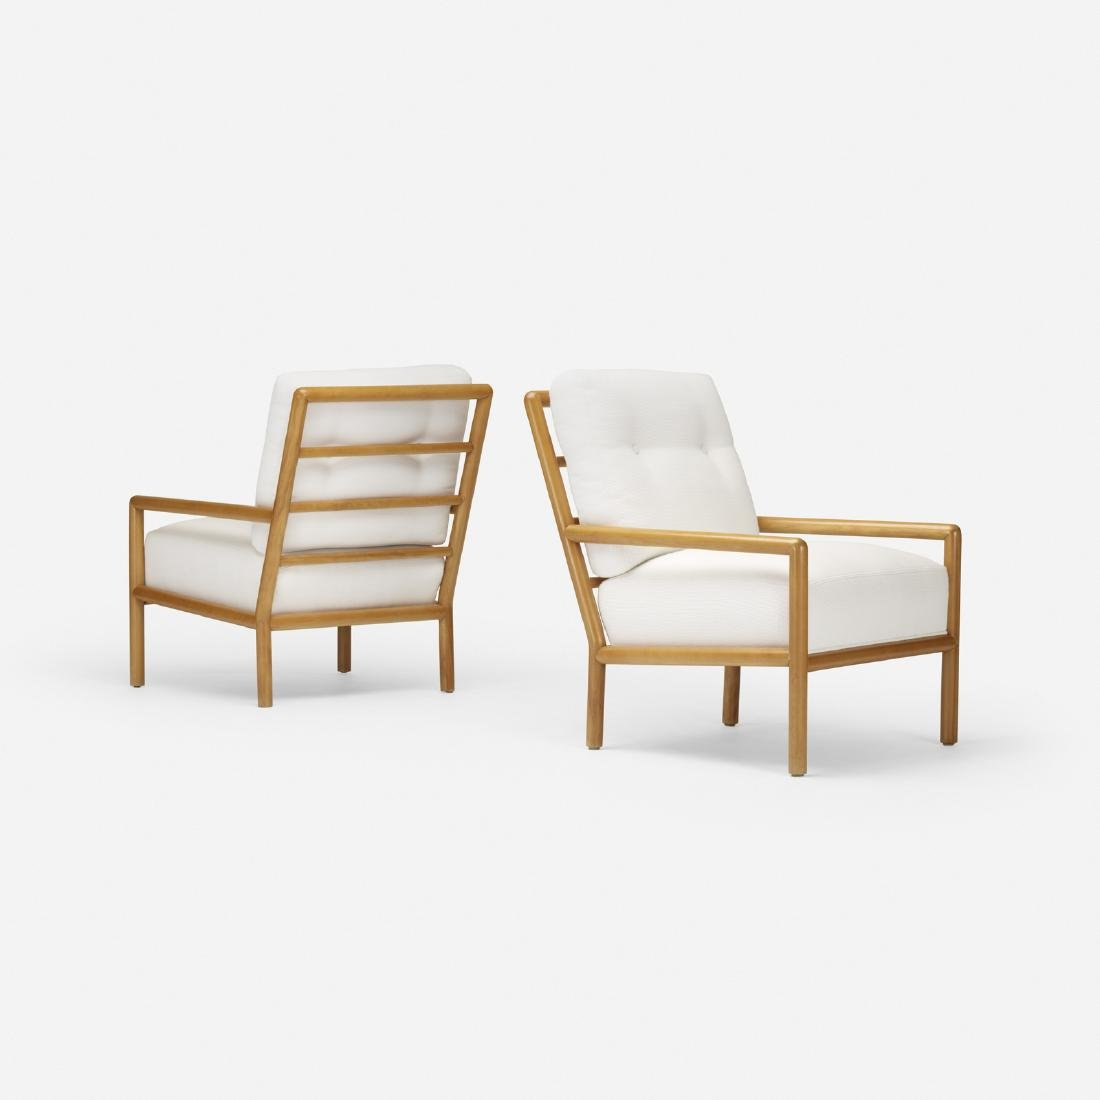 T.H. Robsjohn-Gibbings, lounge chairs, pair